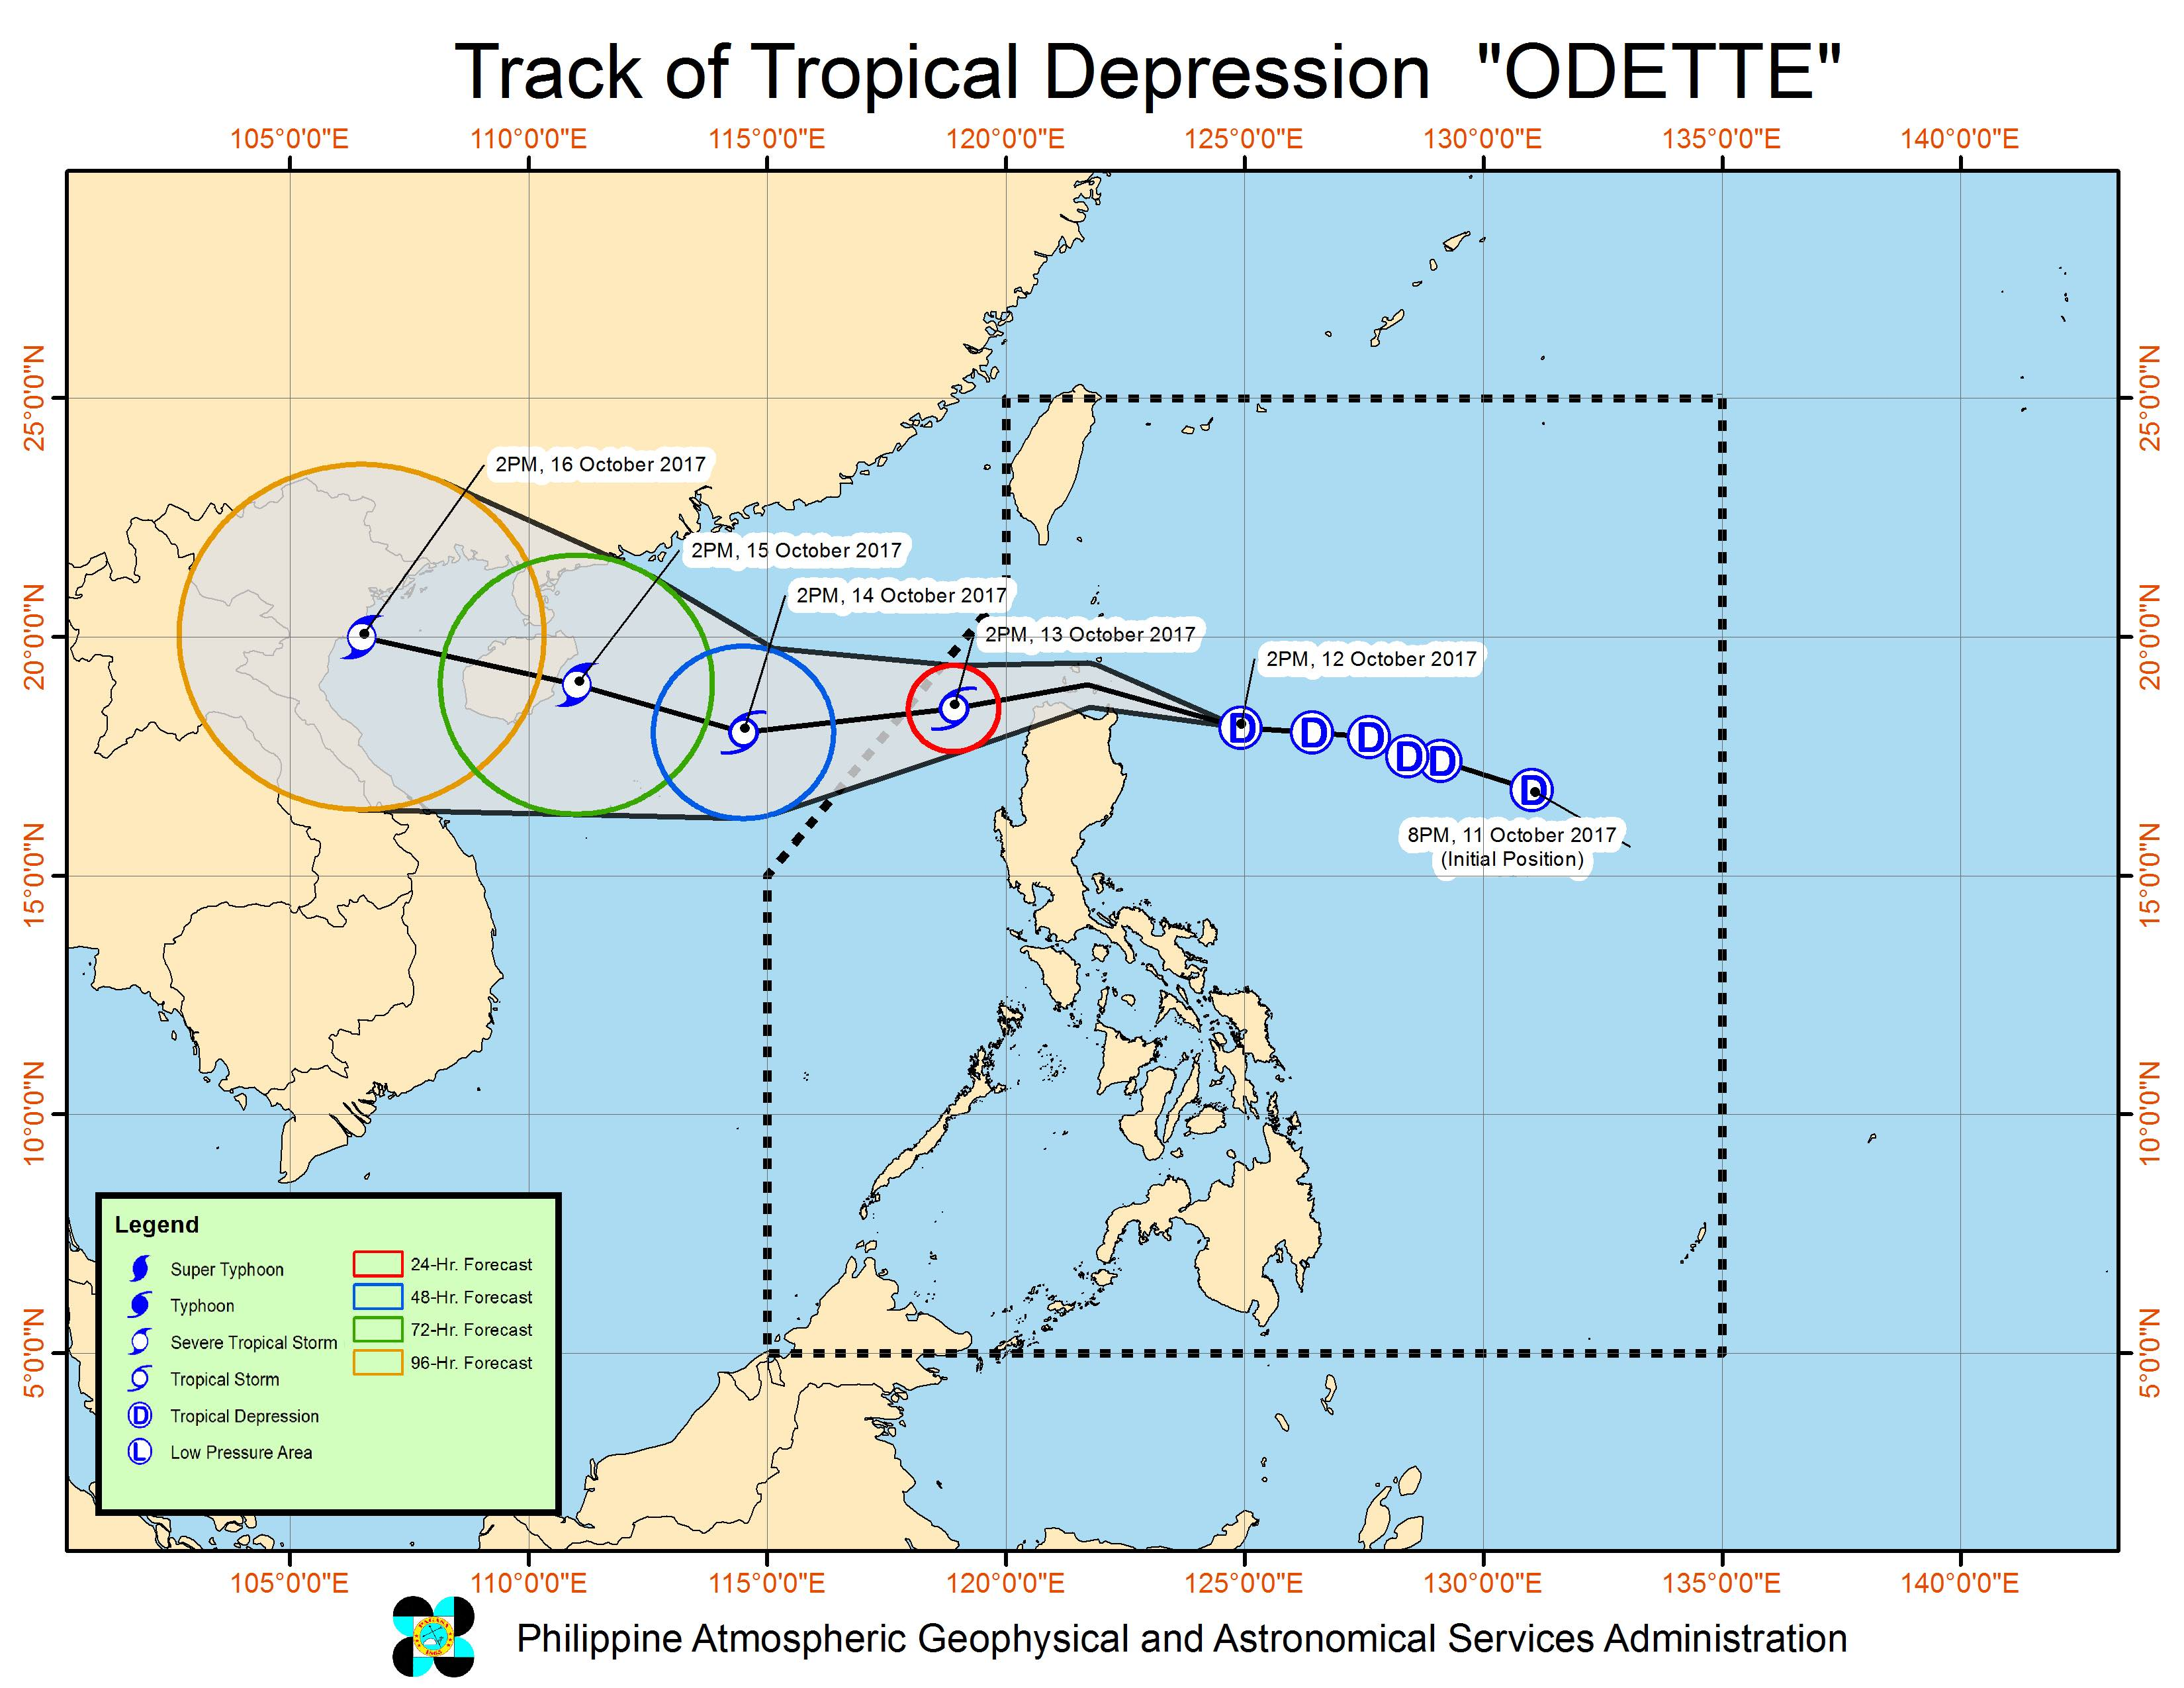 Tropical Depression Odette threatens Cagayan